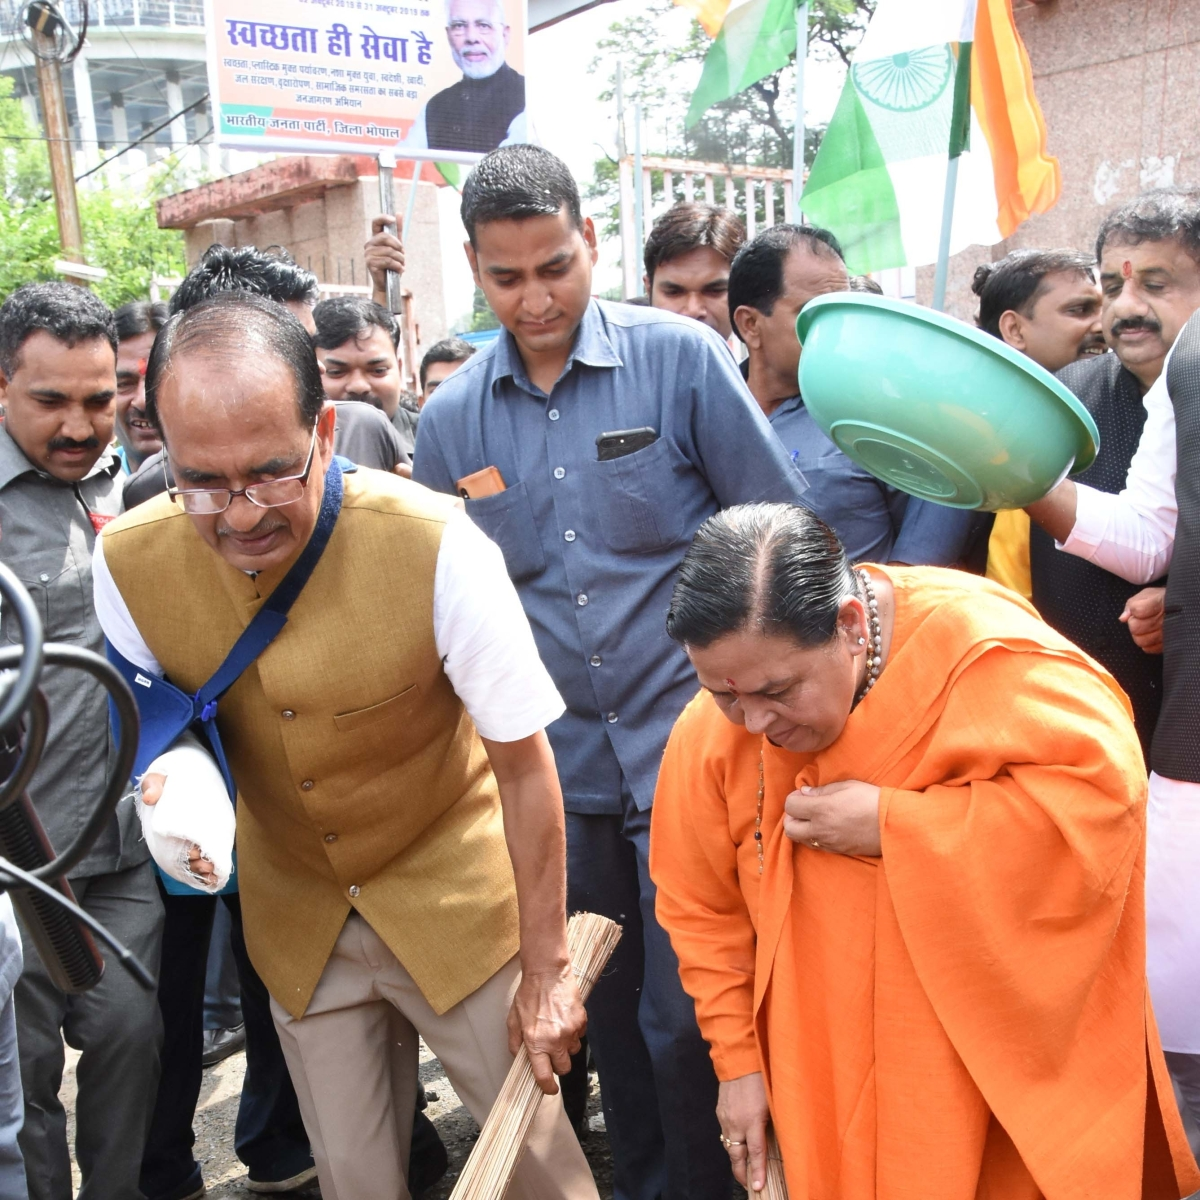 Imbibe ideology of Mahatma Gandhi for betterment of country: Shivraj Singh Chauhan